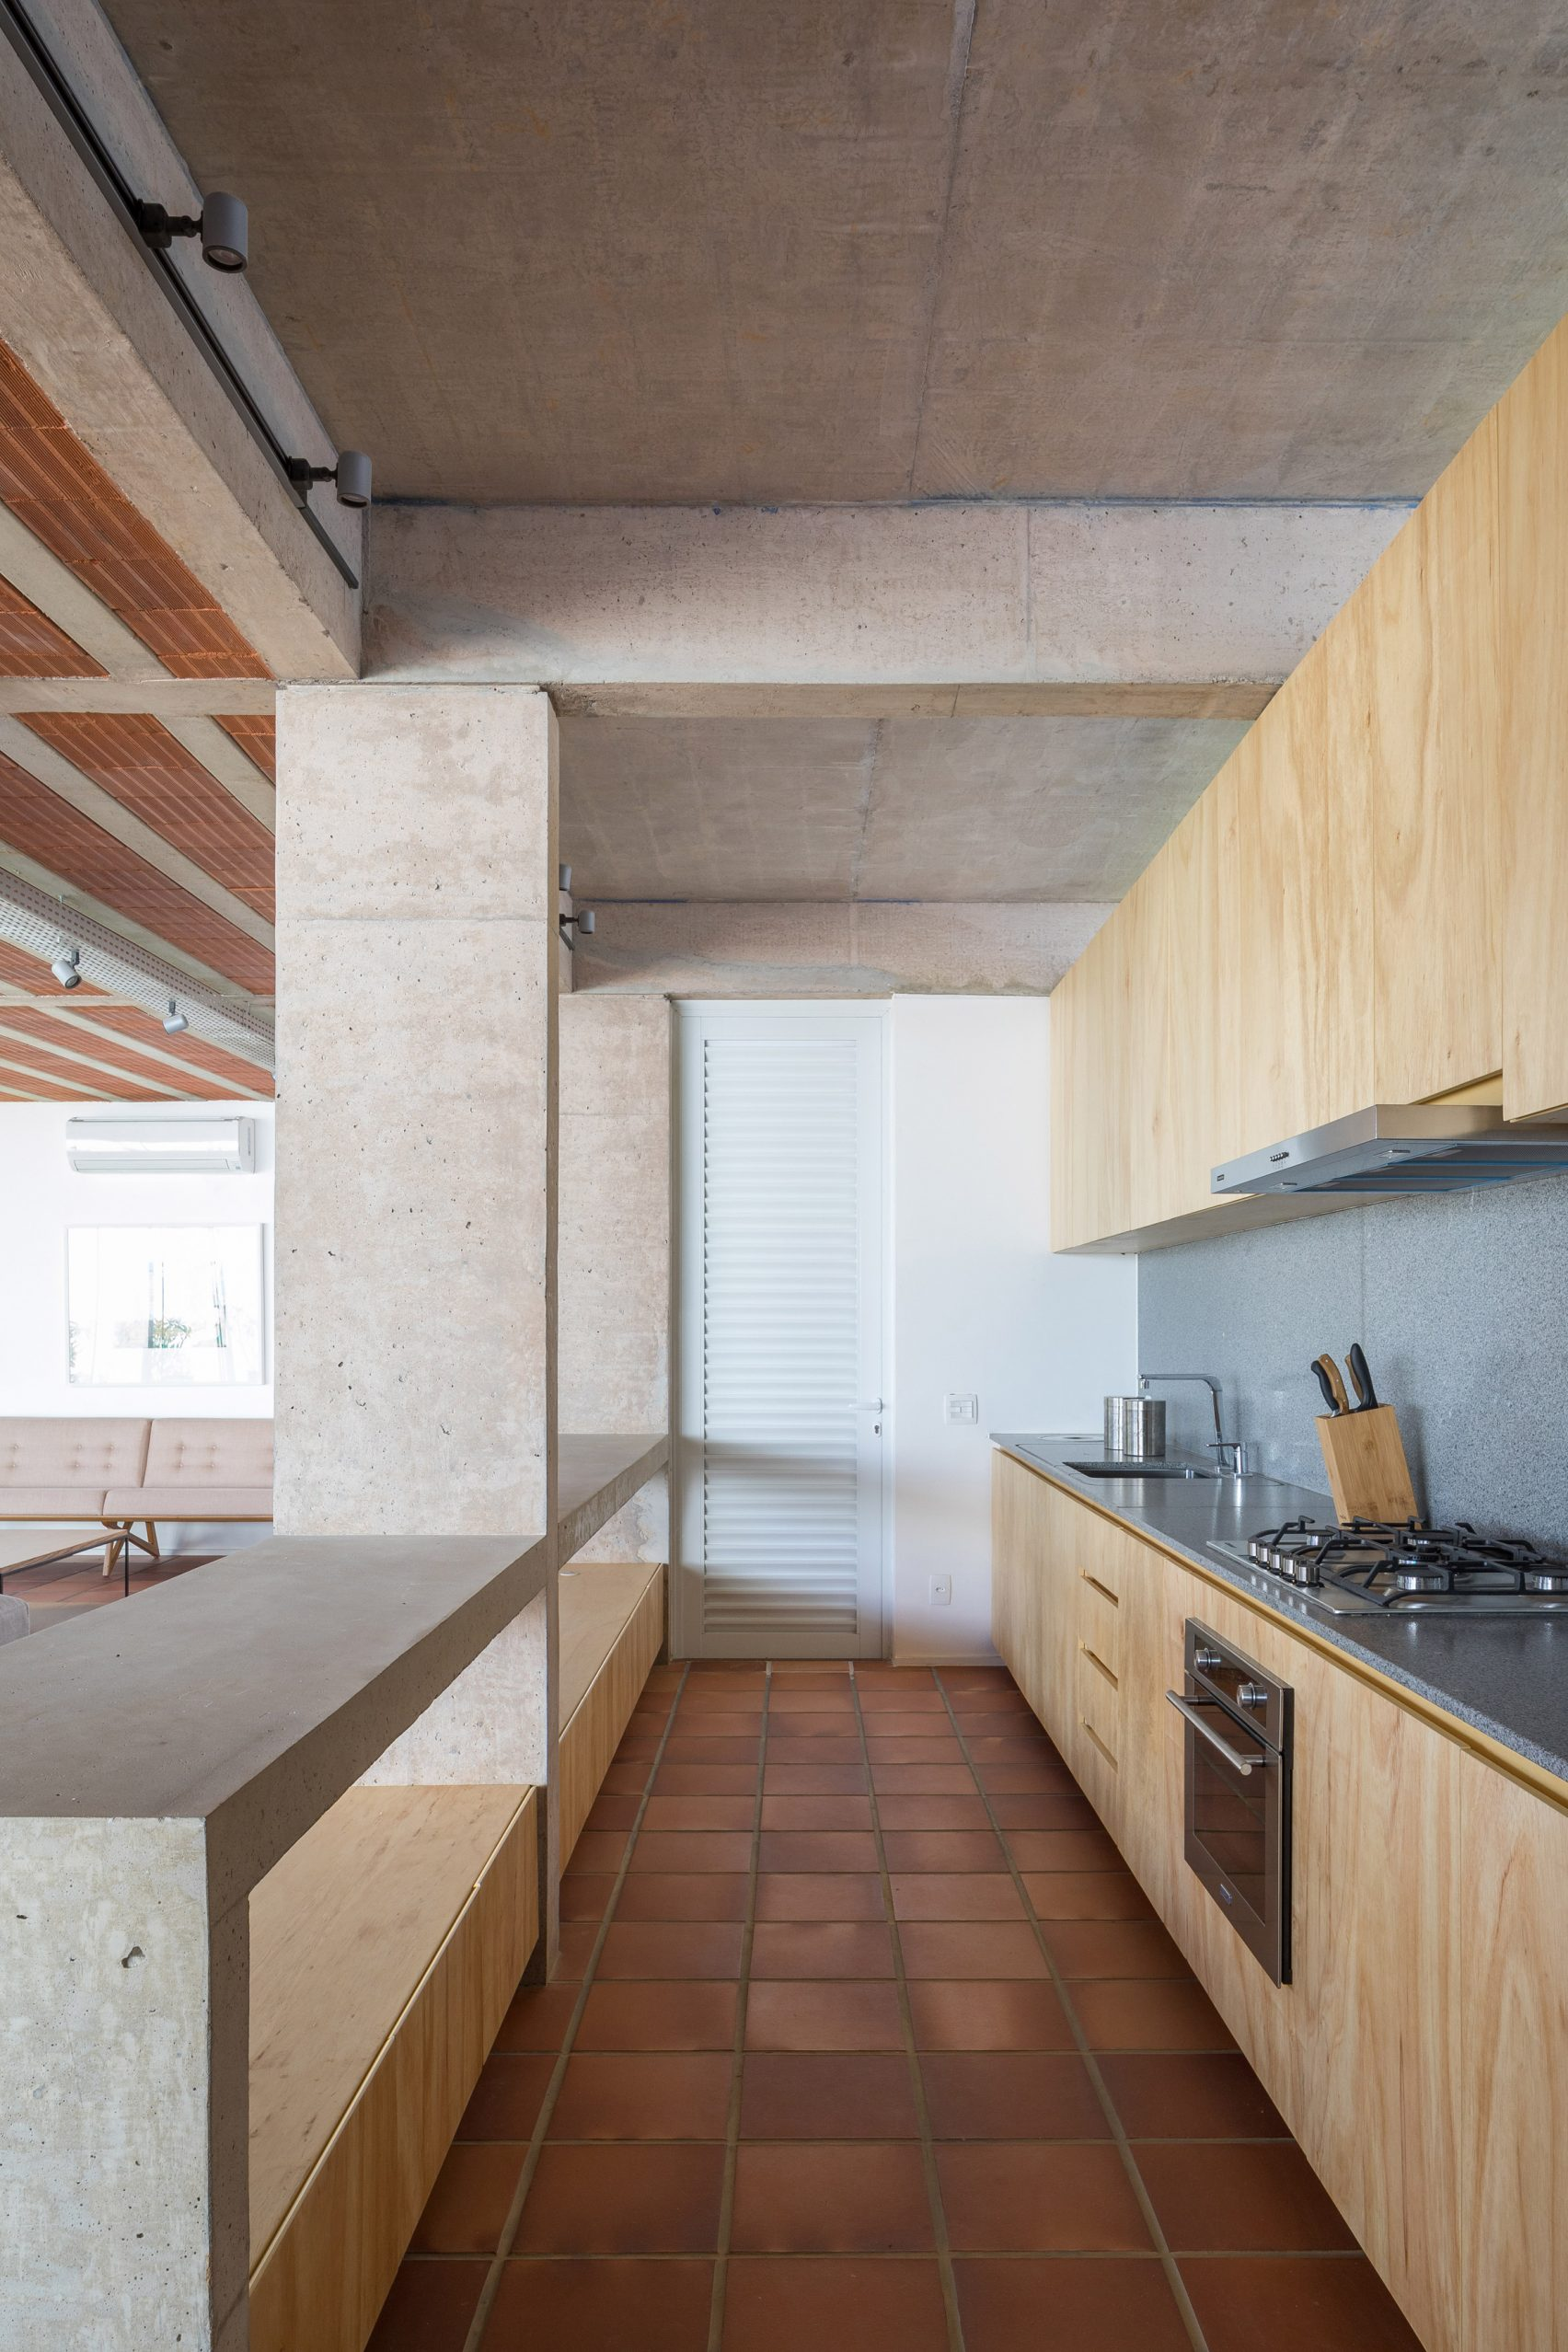 Clay tiles cover the floor of Portico House by Bloco Arquitetos